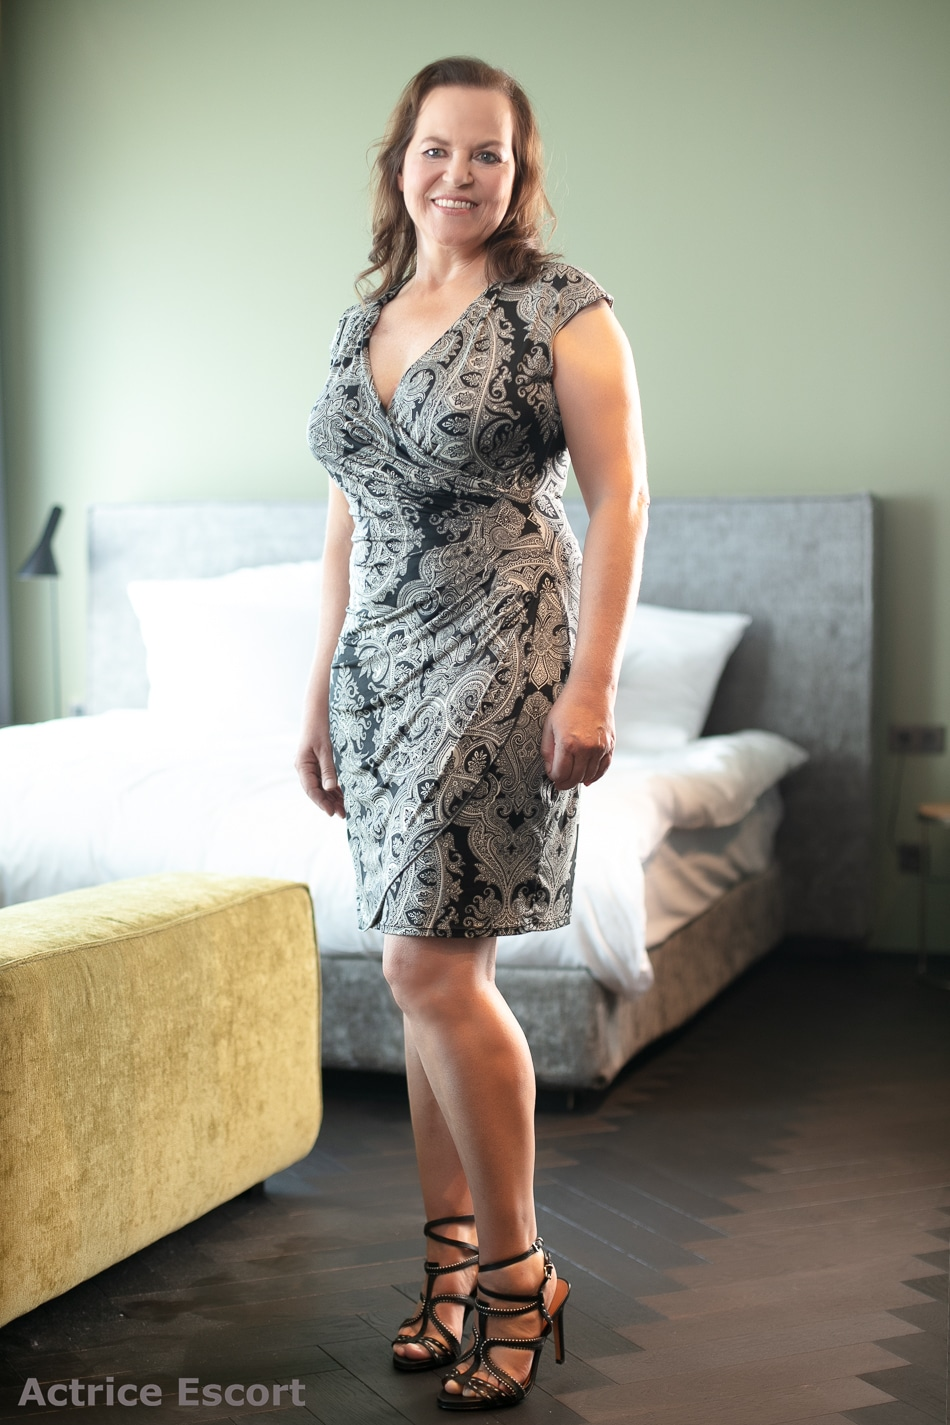 Bettina Escortservice Duesseldorf(15)